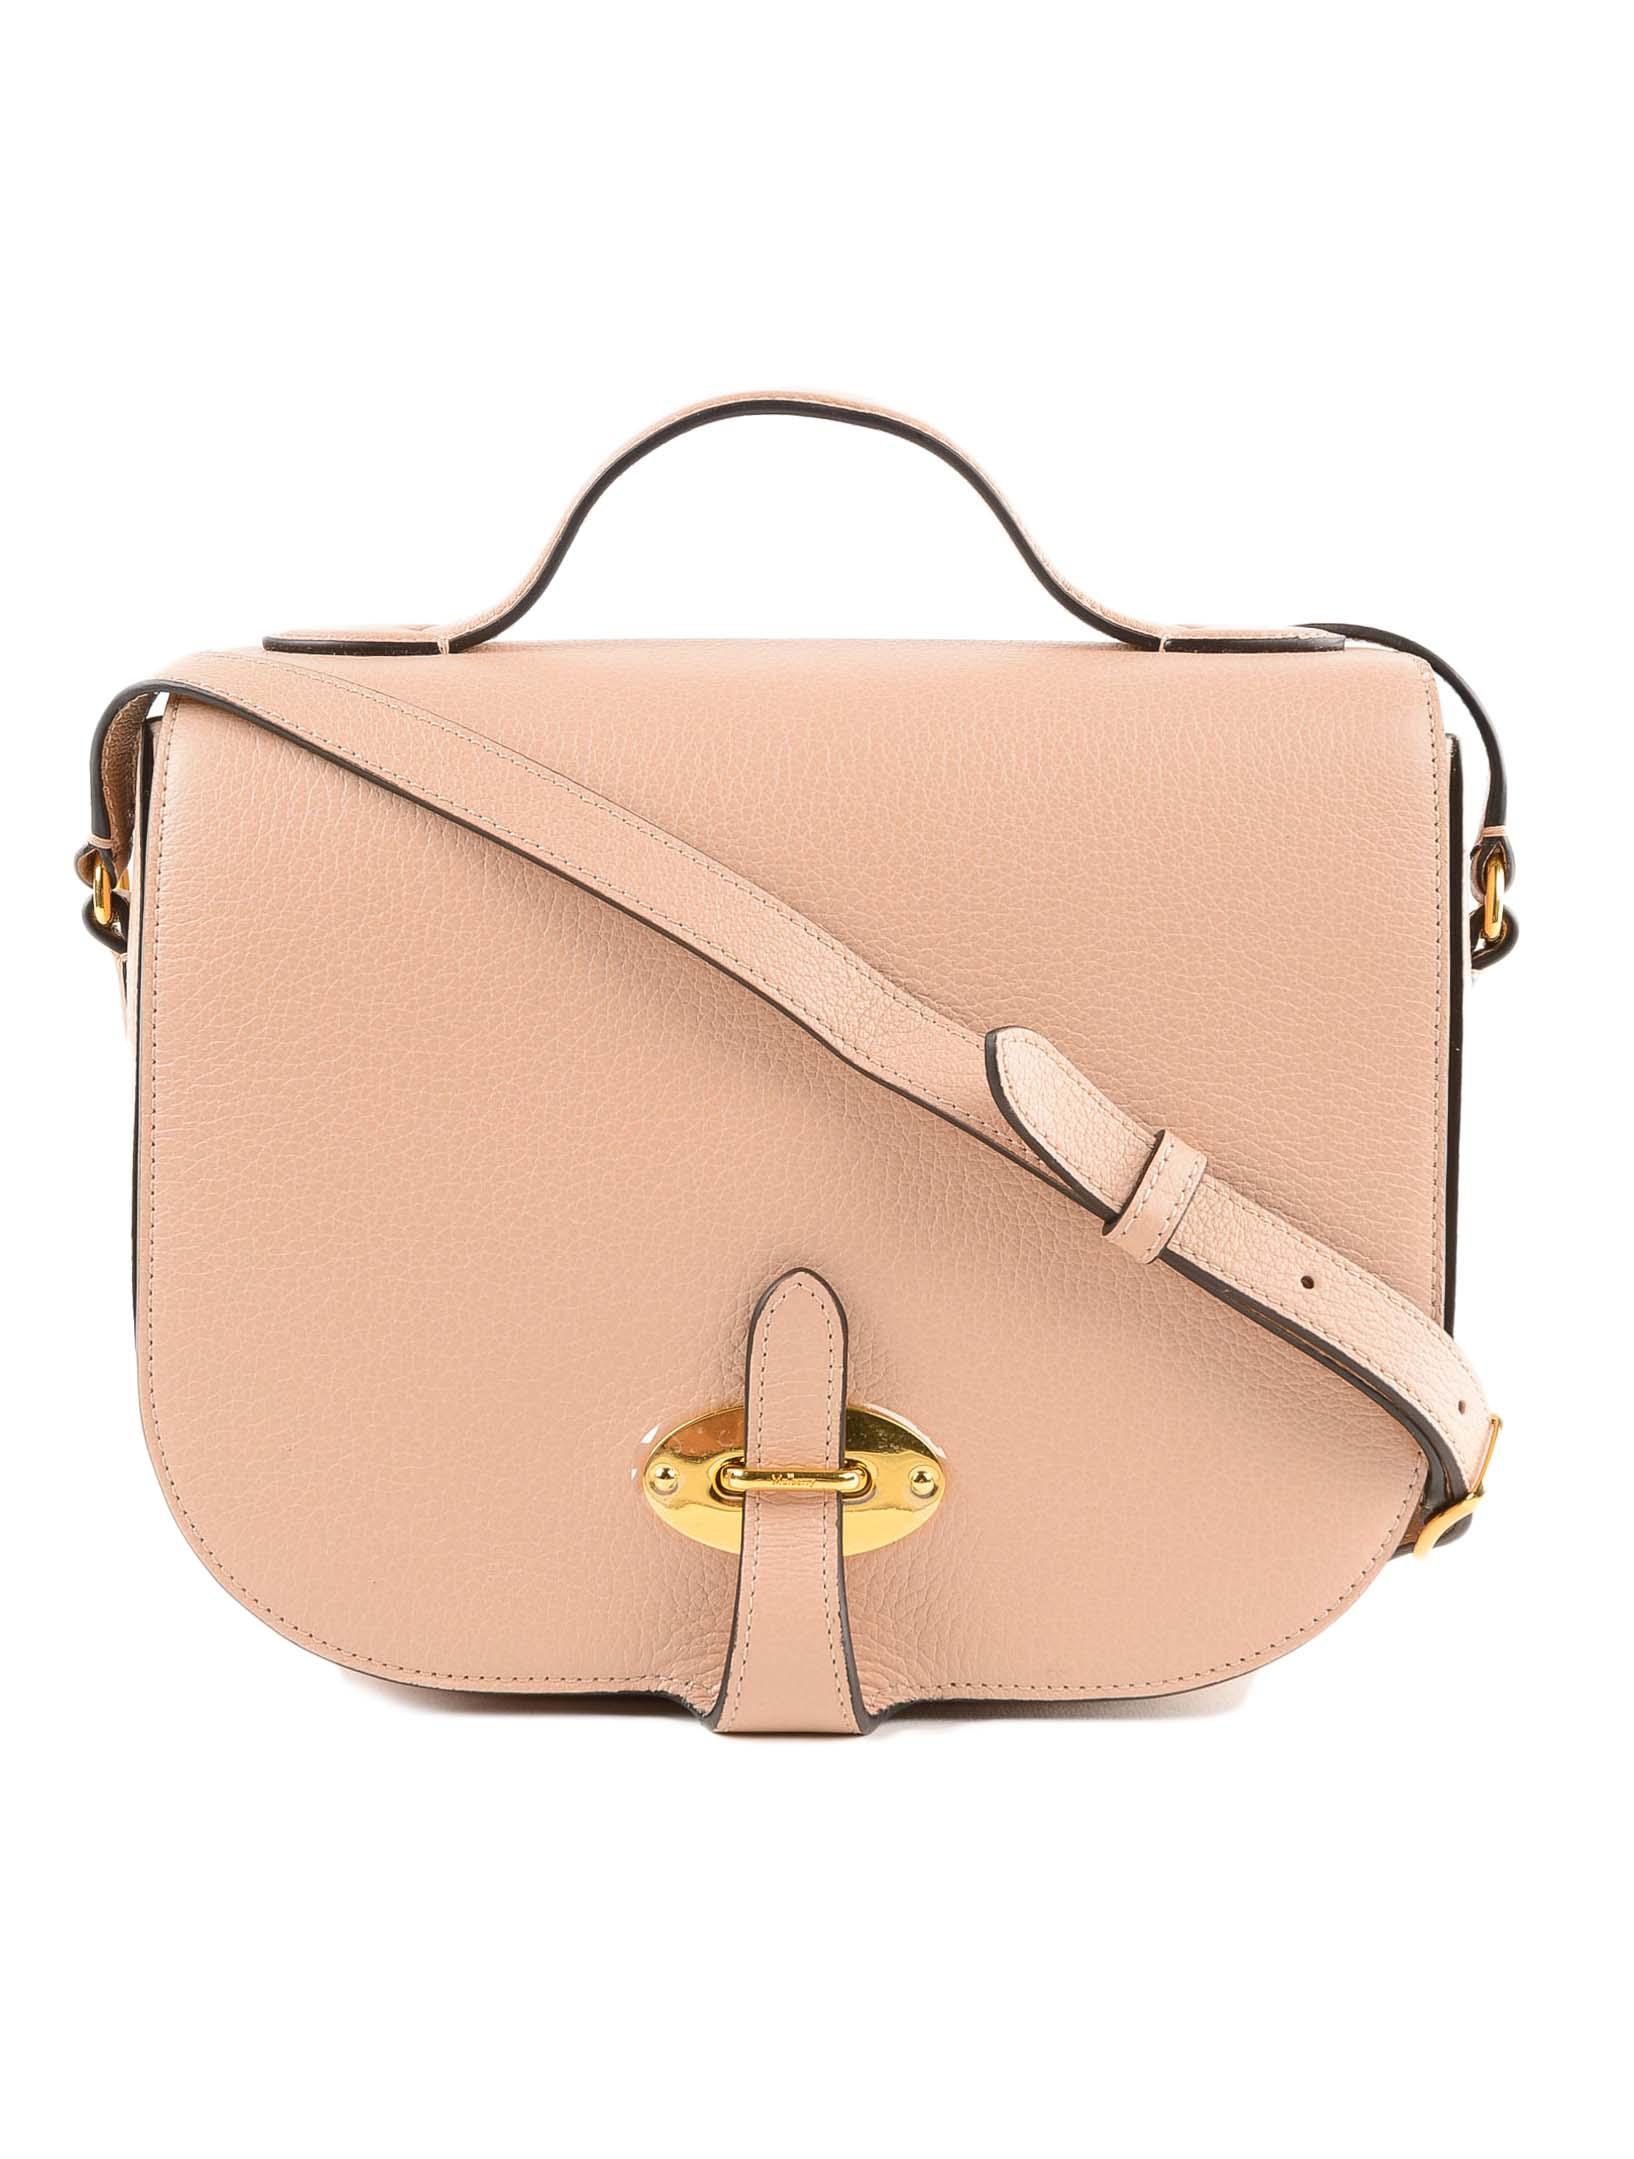 Lyst - Mulberry Tenby Bag in Natural 779ecaa12f